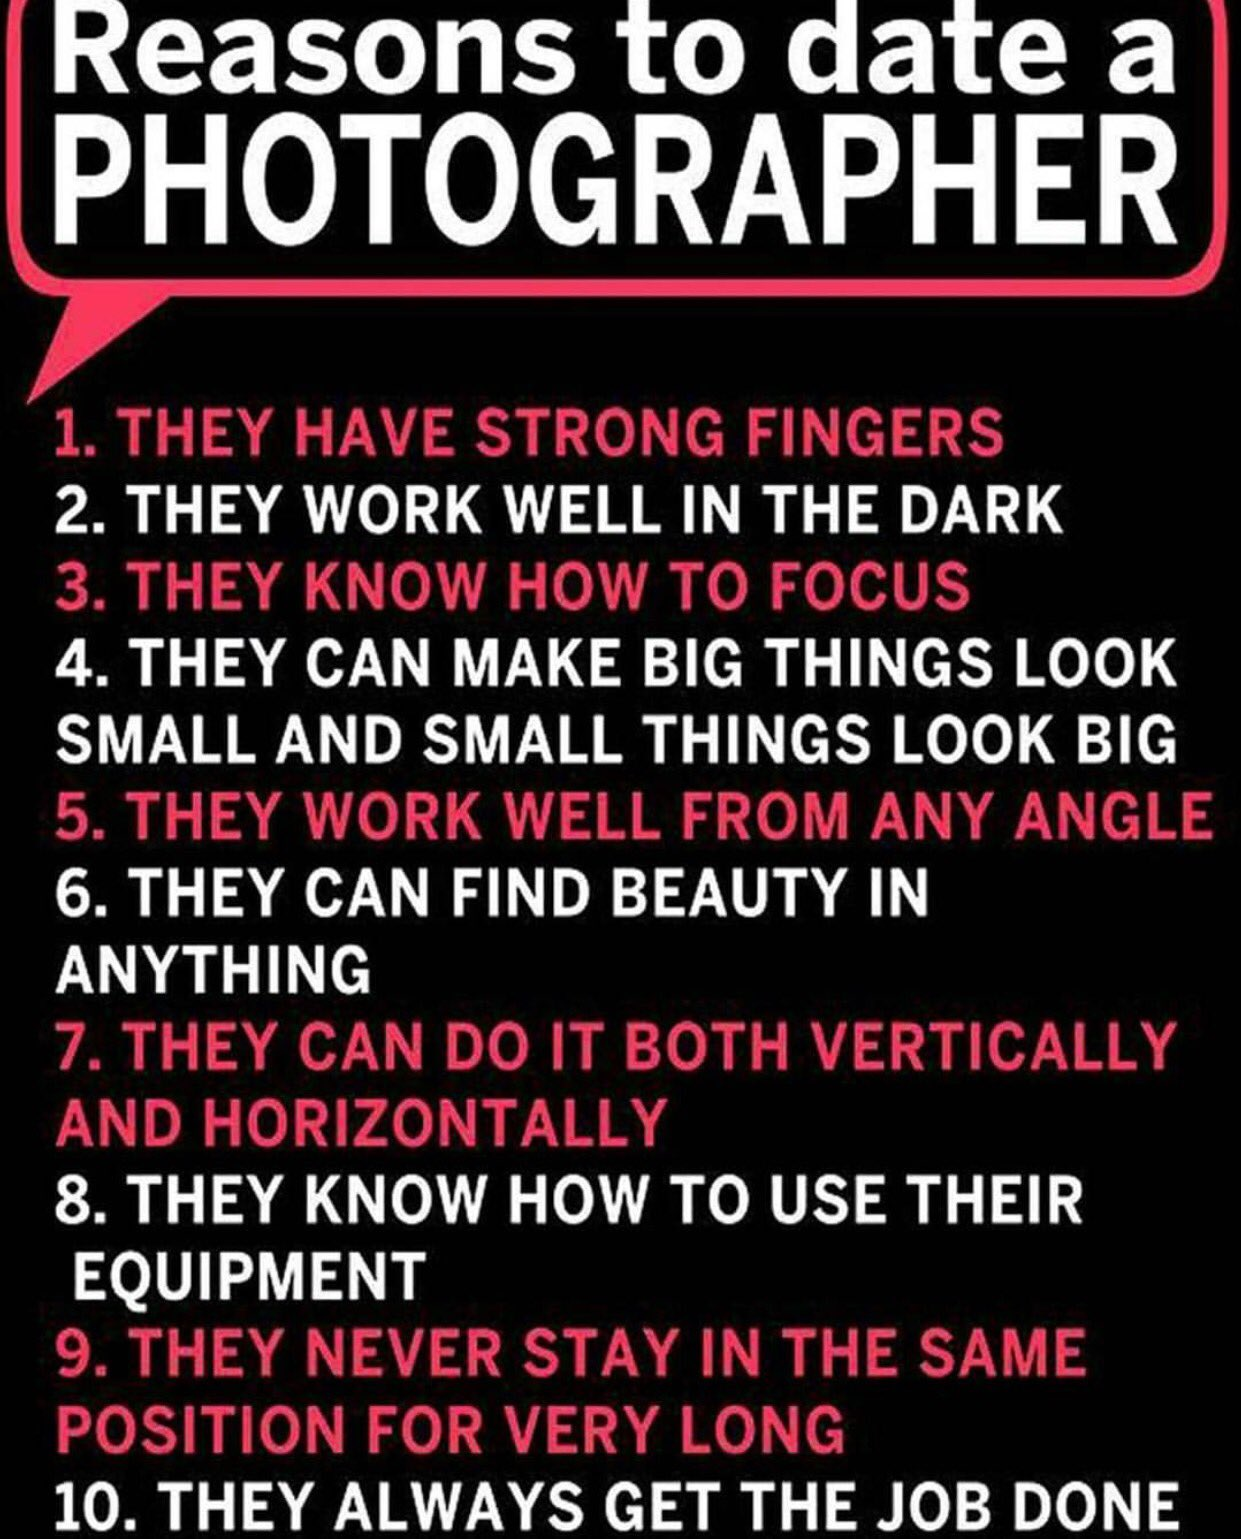 Perks of dating a photographer